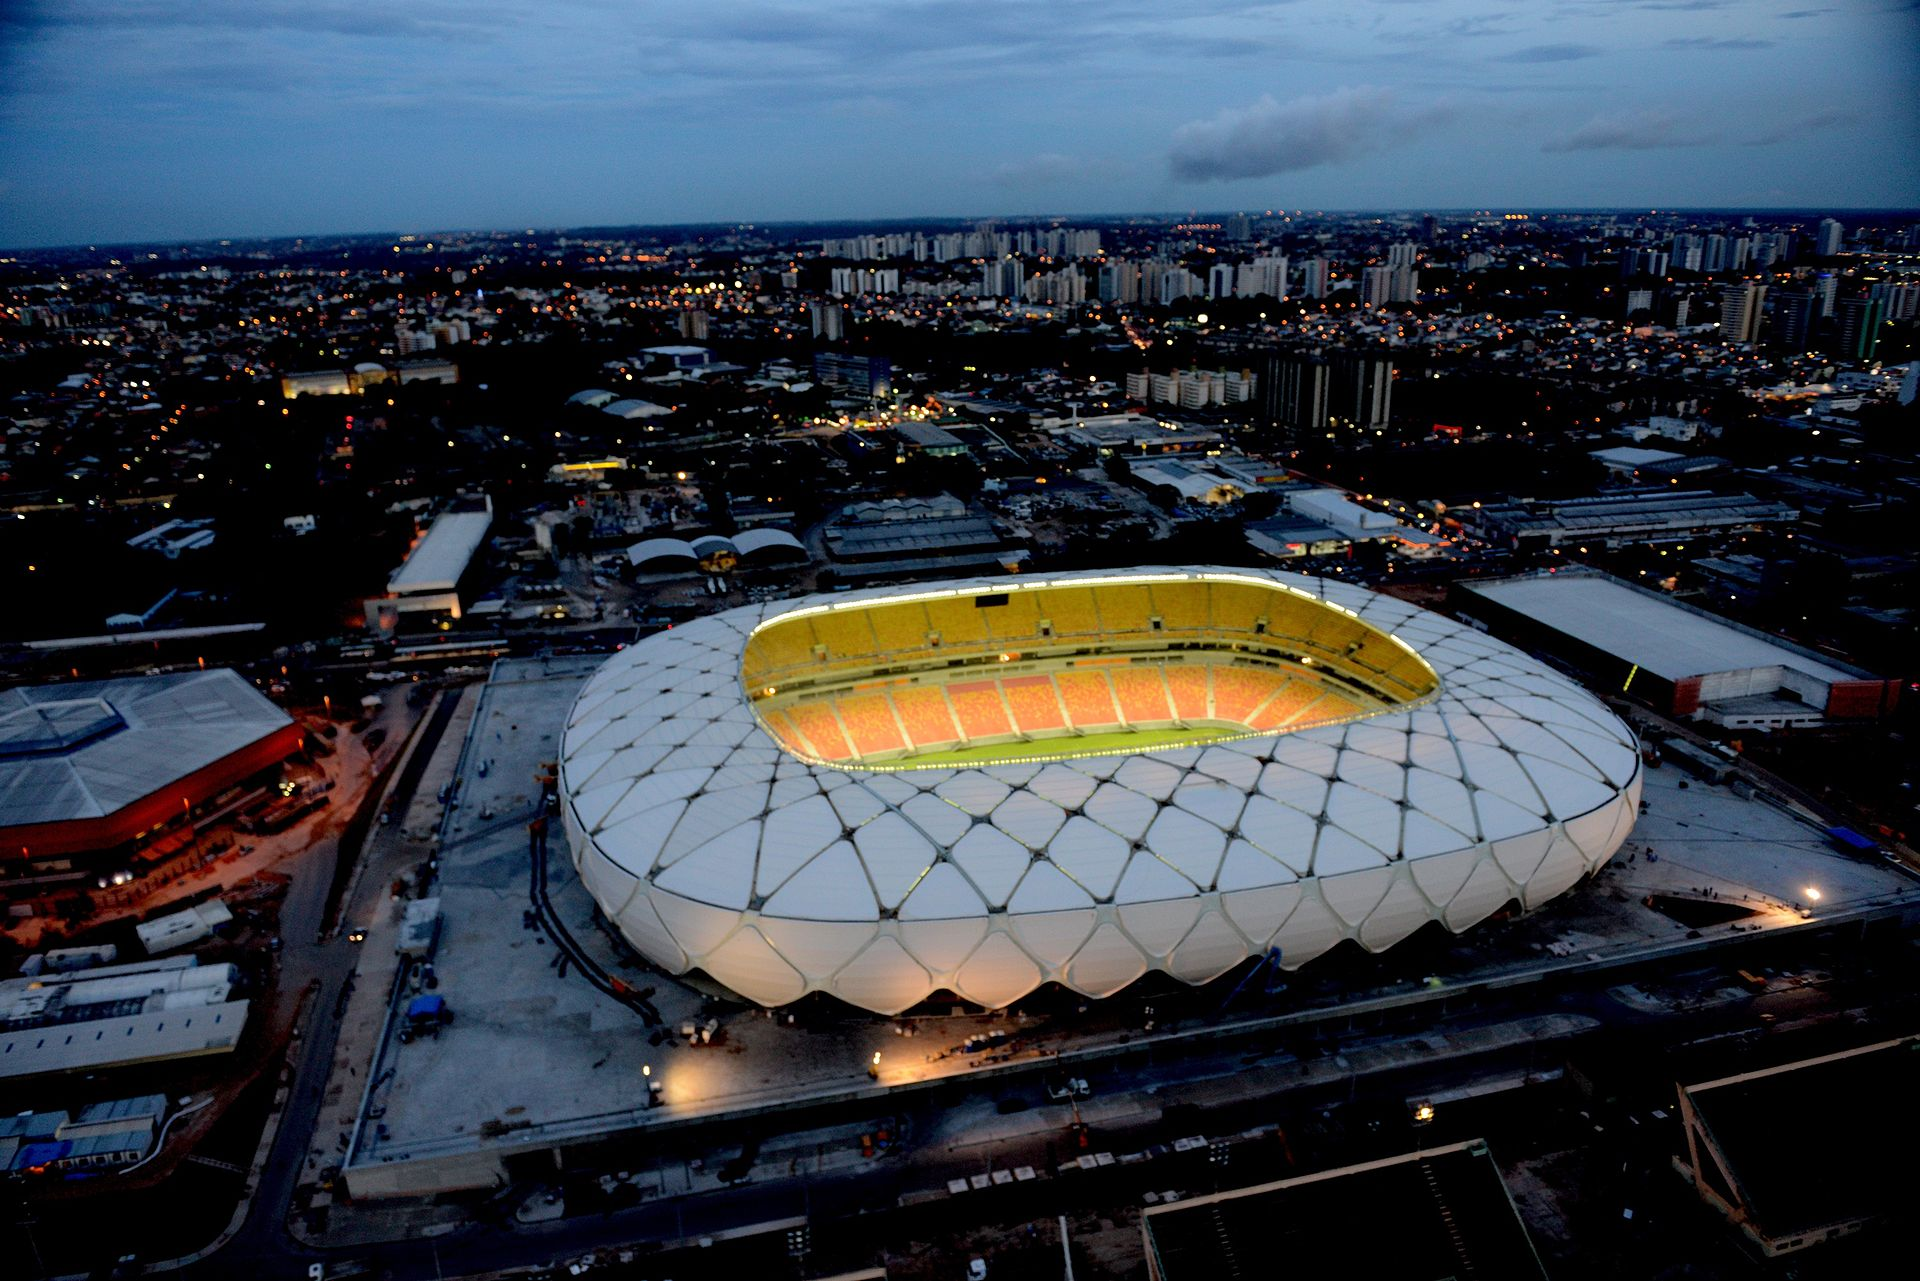 Brazil's World Cup problem and how to future-proof modern stadiums